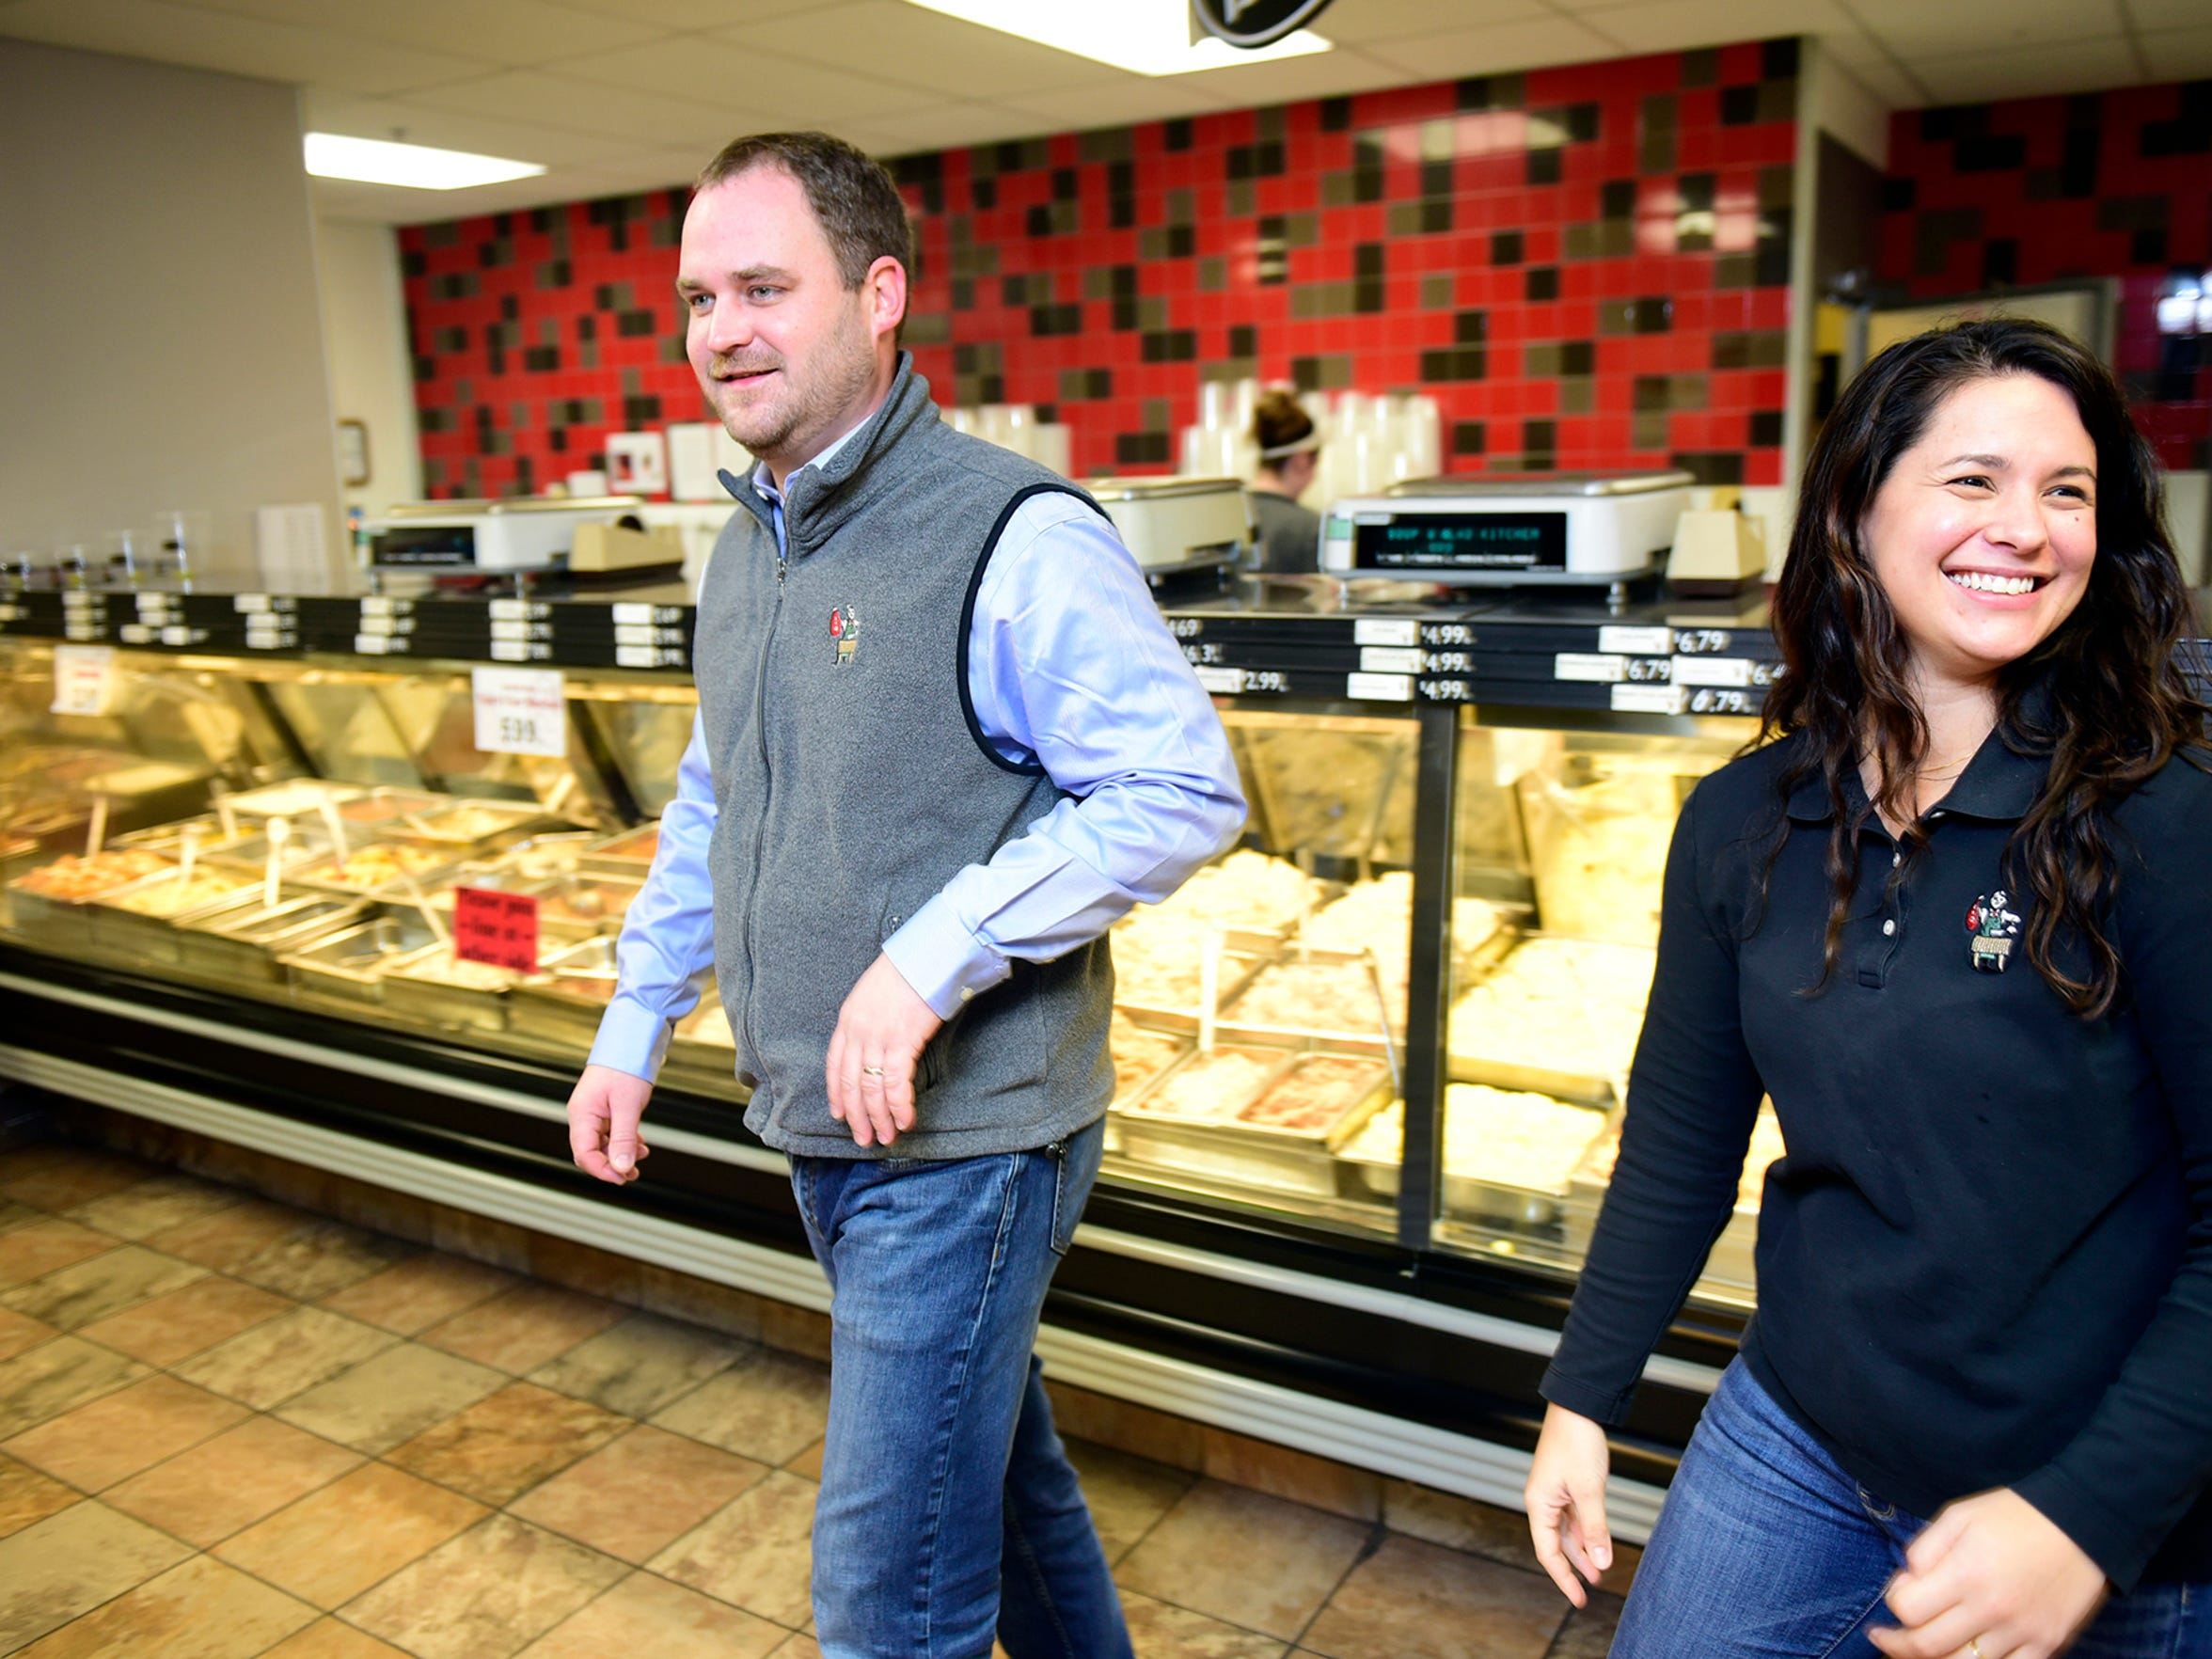 Owners Leo and Anne Schoenhofen walk through The Butcher Shoppe, on Stouffer Avenue in Chambersburg, on Tuesday, Jan. 30. They took over the business from Anne's parents about a year ago. Anne is the granddaughter of founder, Glenn Koons.